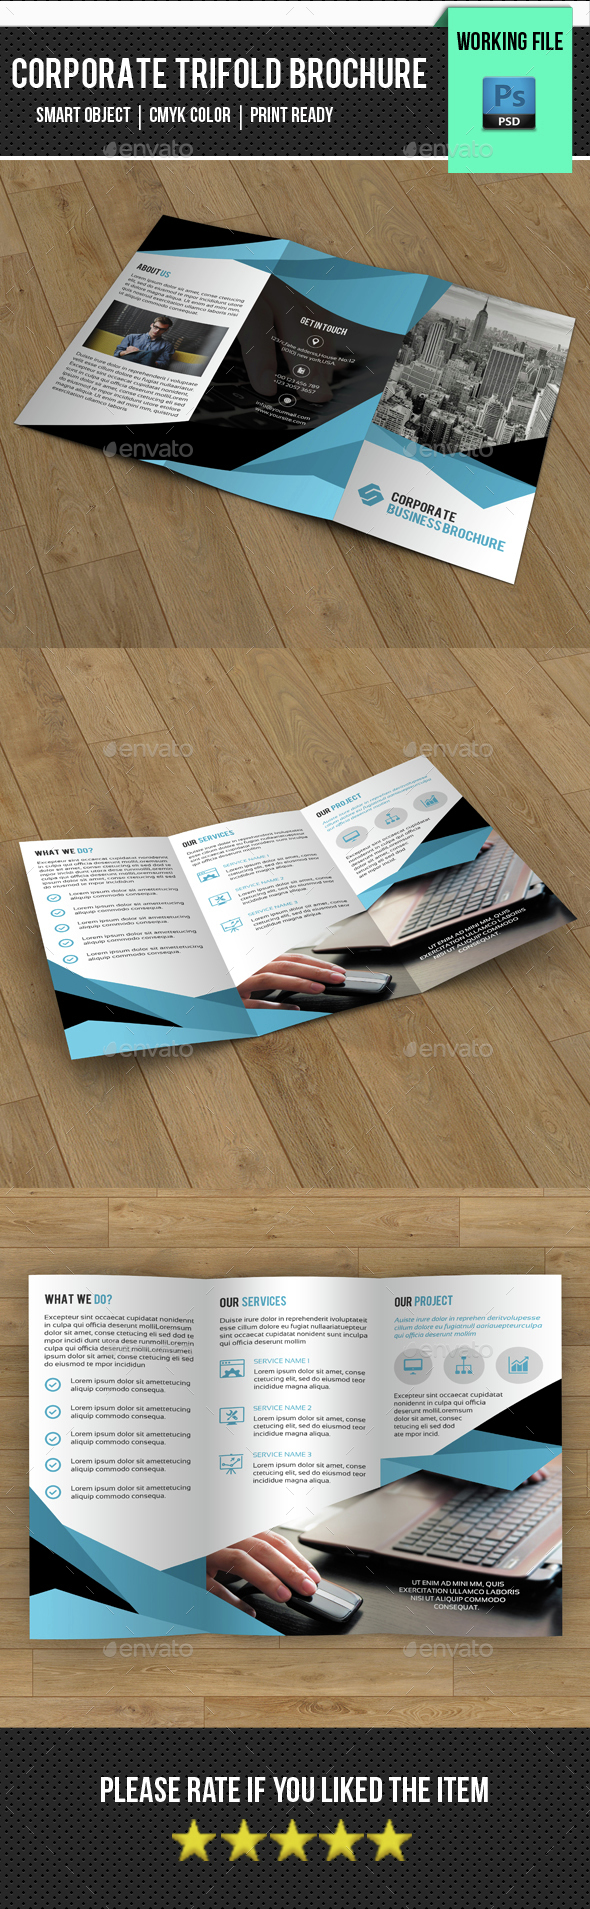 Business Trifold Brochure-V277 - Corporate Brochures